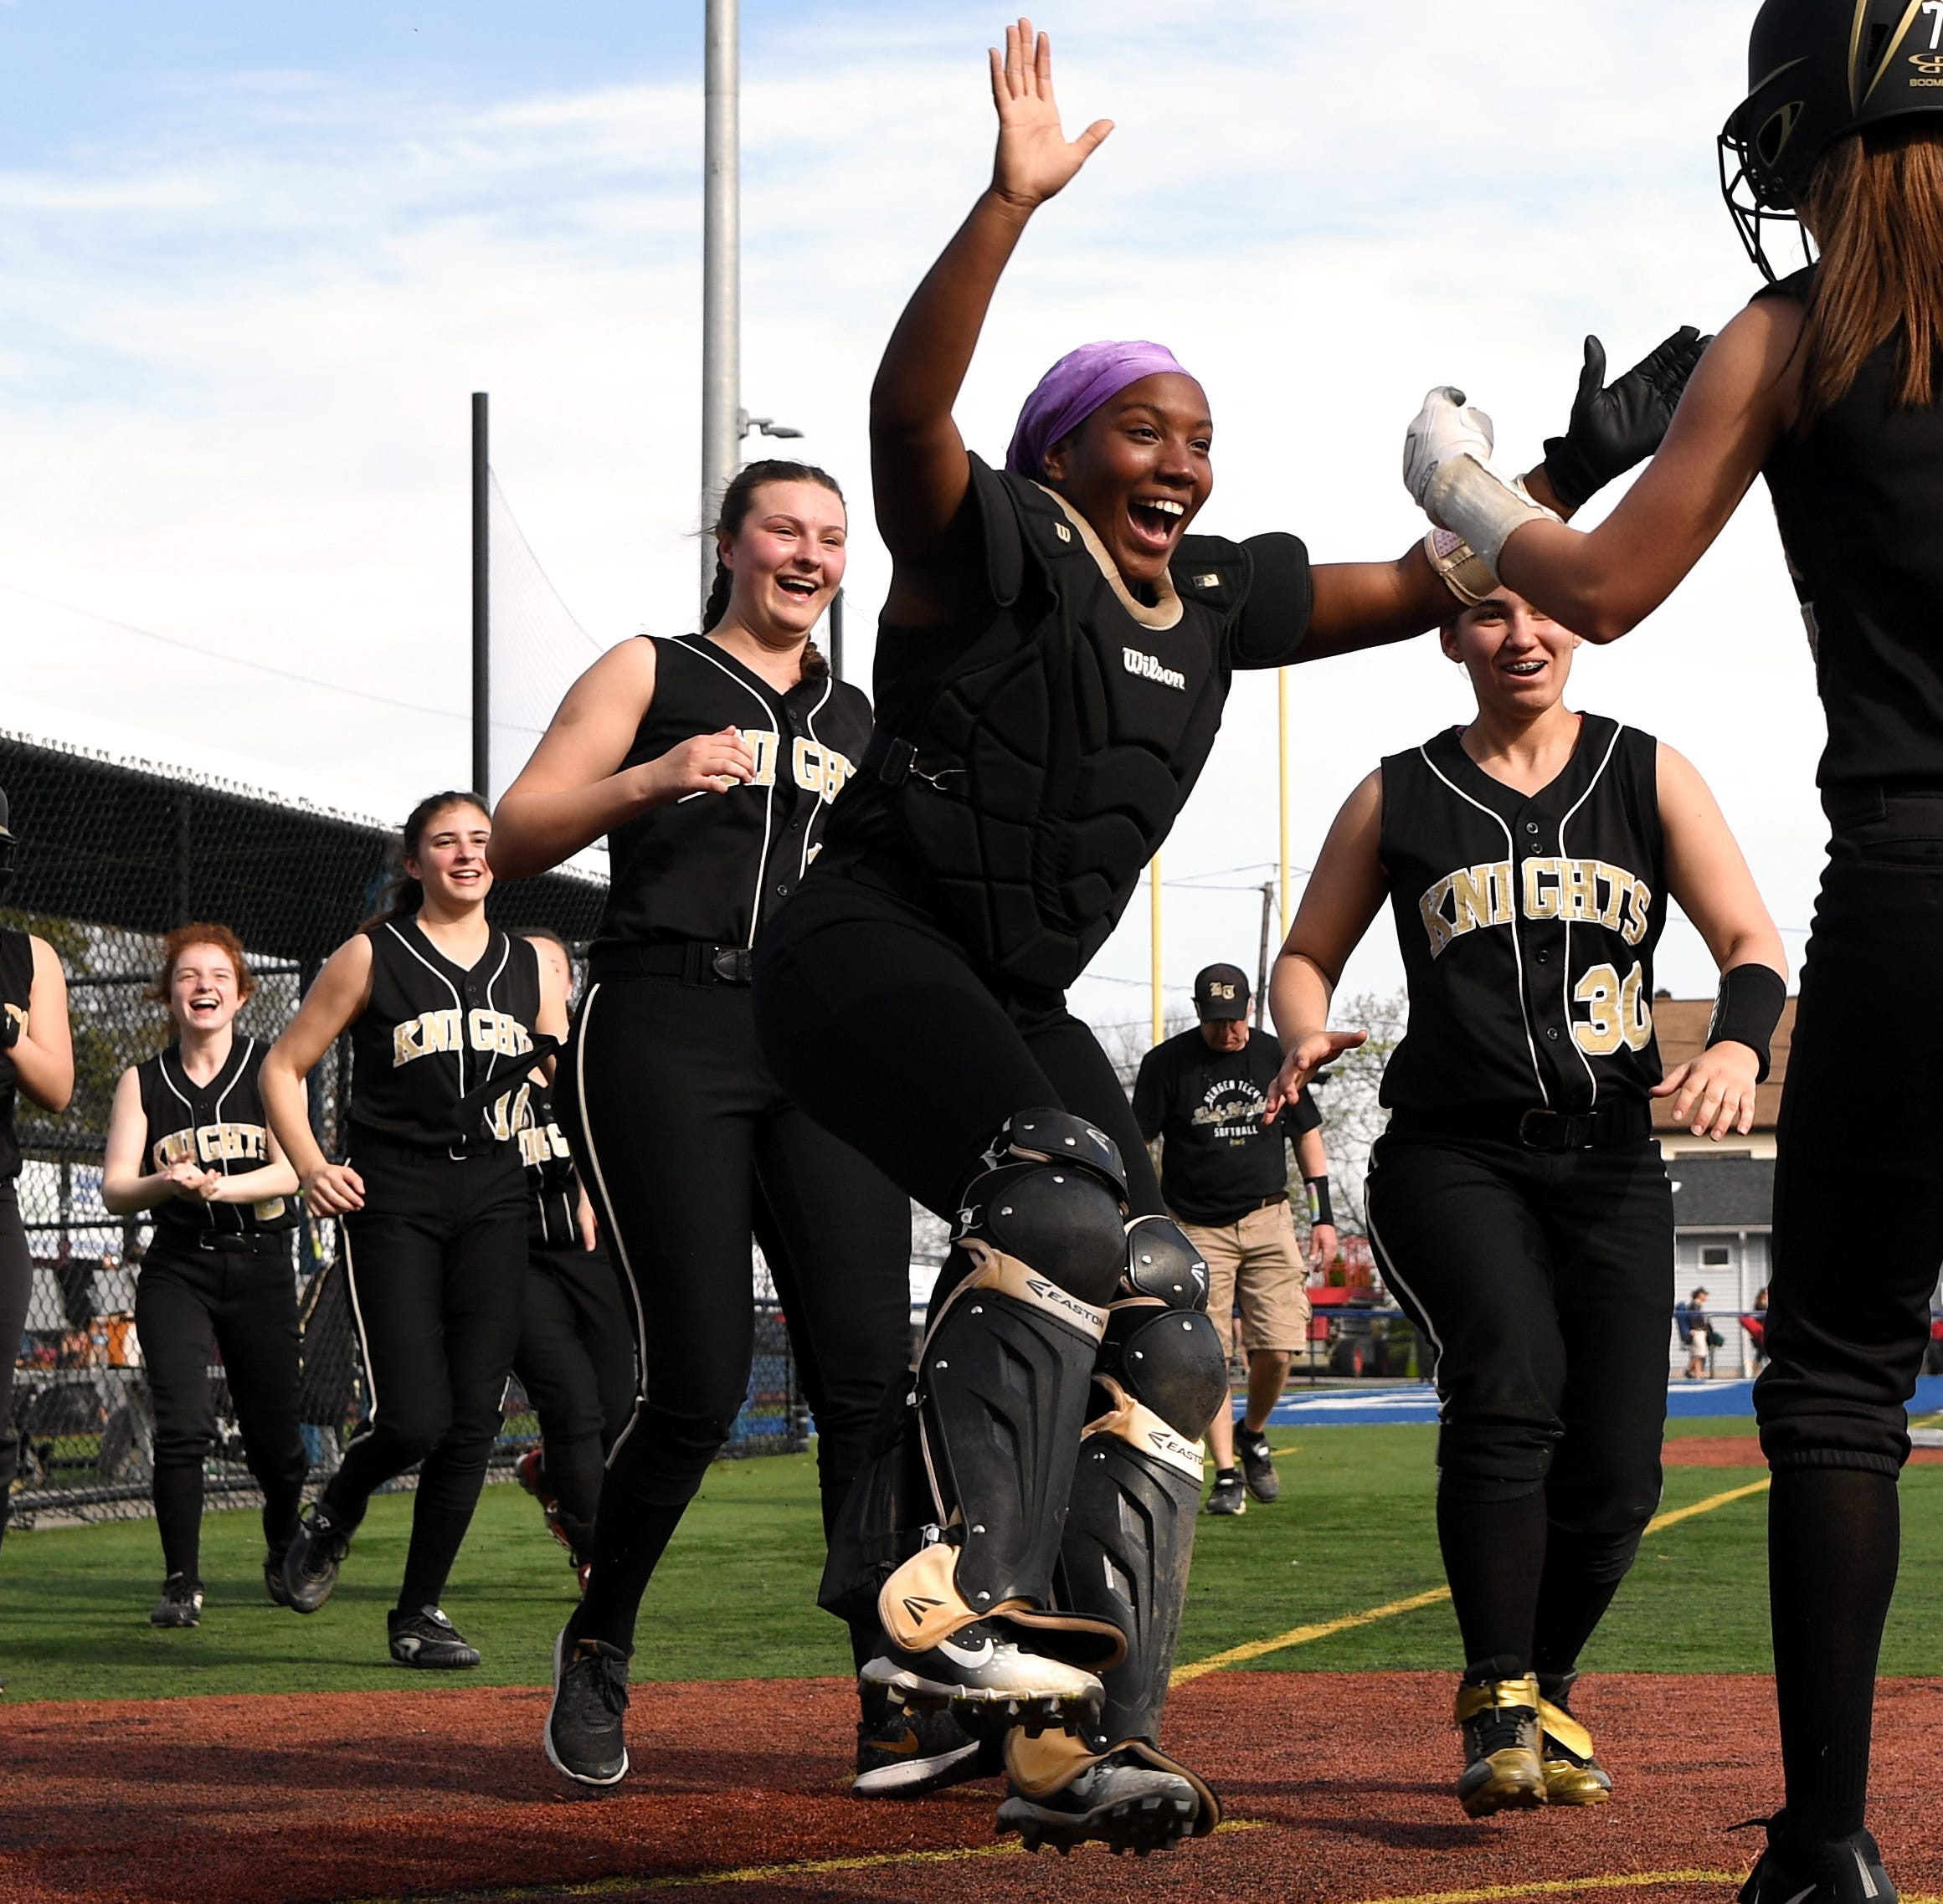 Bergen County softball tournament bracket, scores and schedule